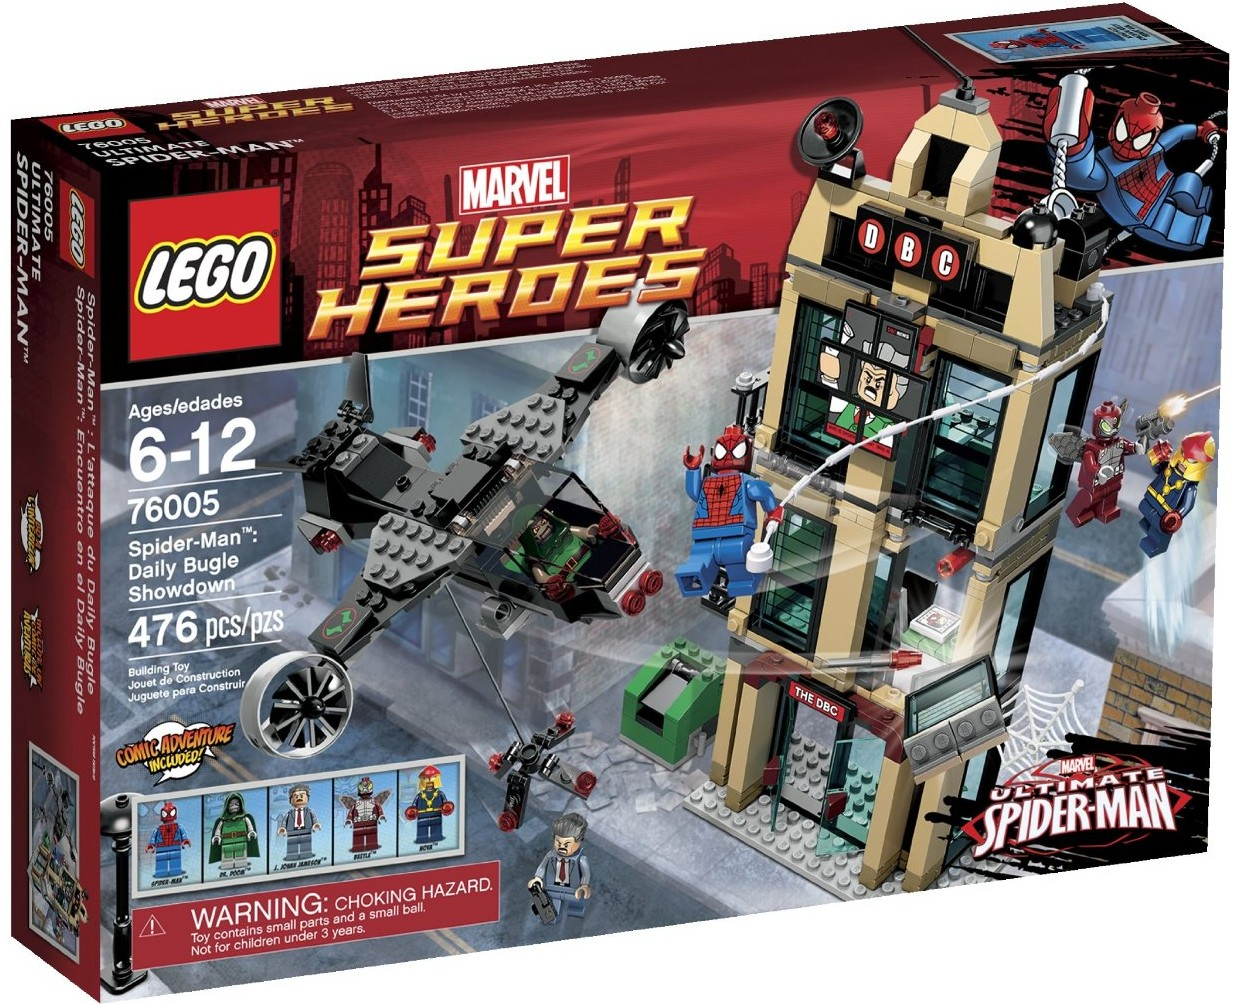 http://www.bricksandbloks.com/wp-content/uploads/2012/12/LEGO-Spider-Man-Daily-Bugle-Showdown-76005-Set-Box-e1355691224438.jpg